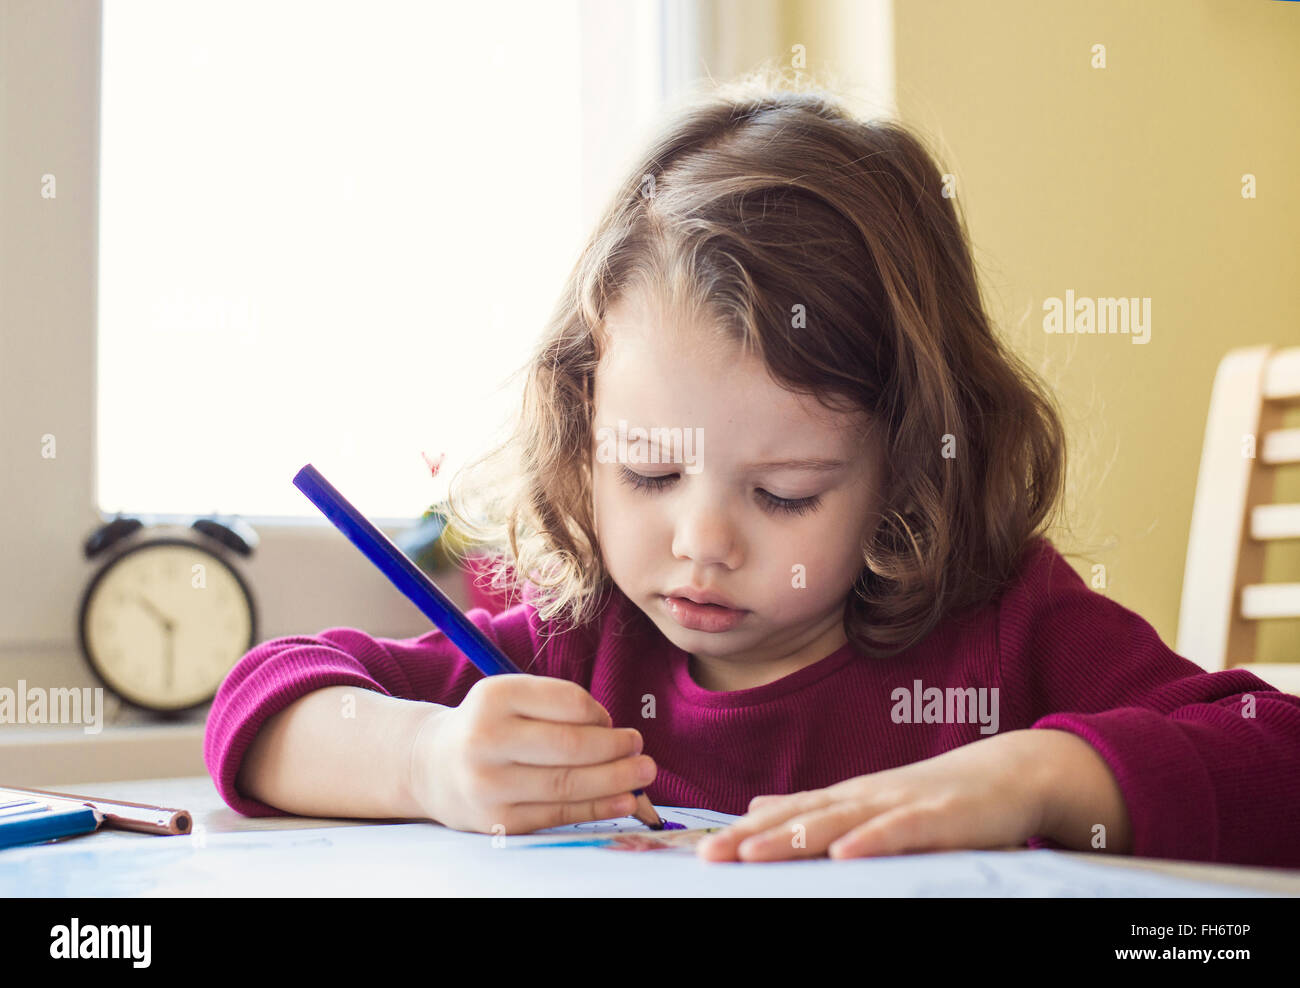 Portrait of little girl painting with coloured pencil - Stock Image